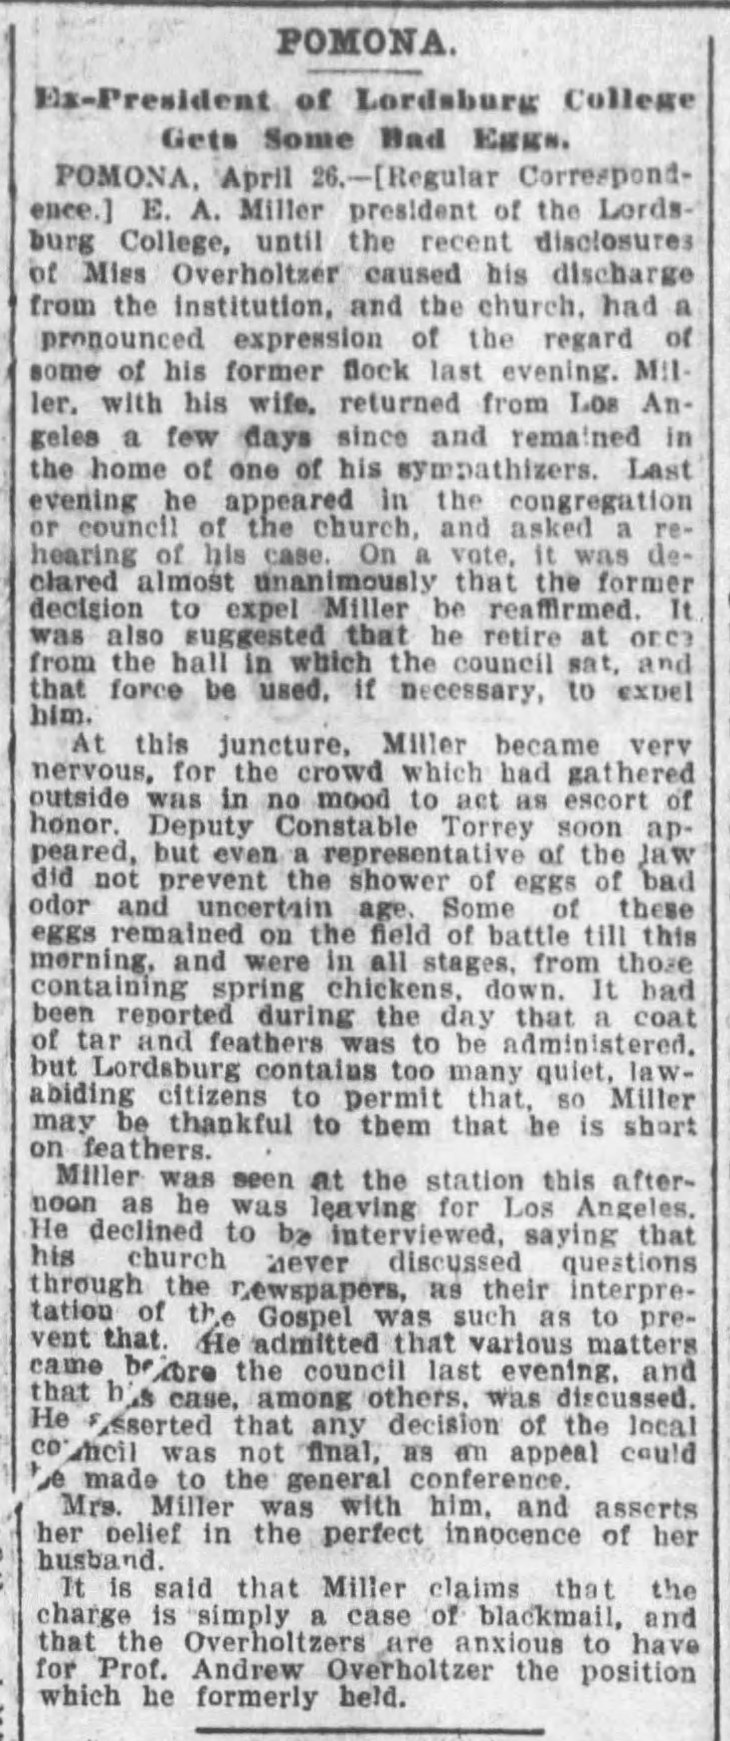 The_Los_Angeles_Times_Thu__Apr_27__1899_